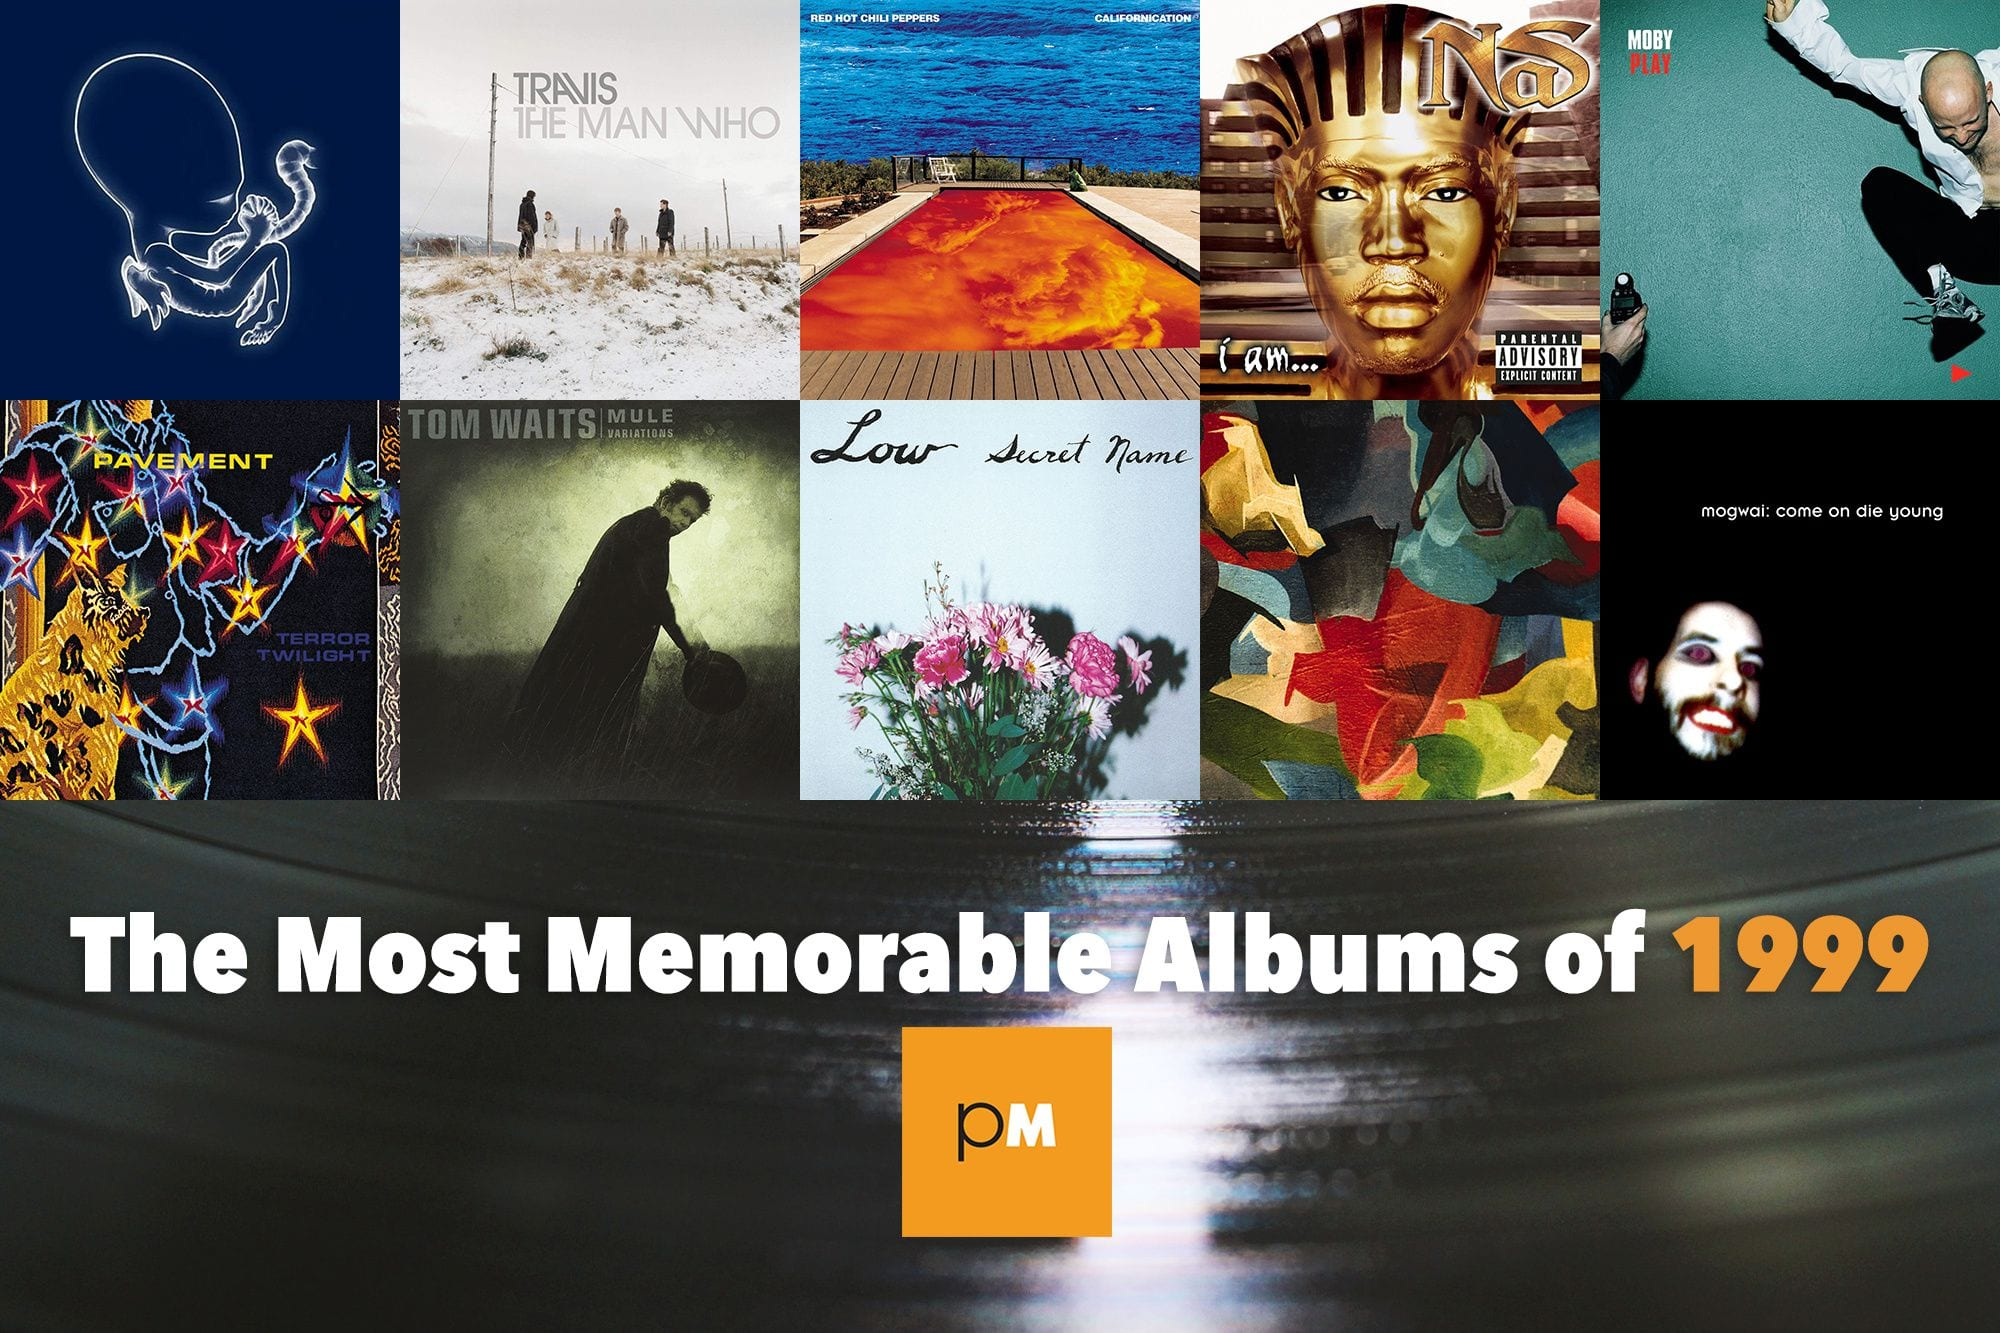 The Most Memorable Albums of 1999 (Part 2)